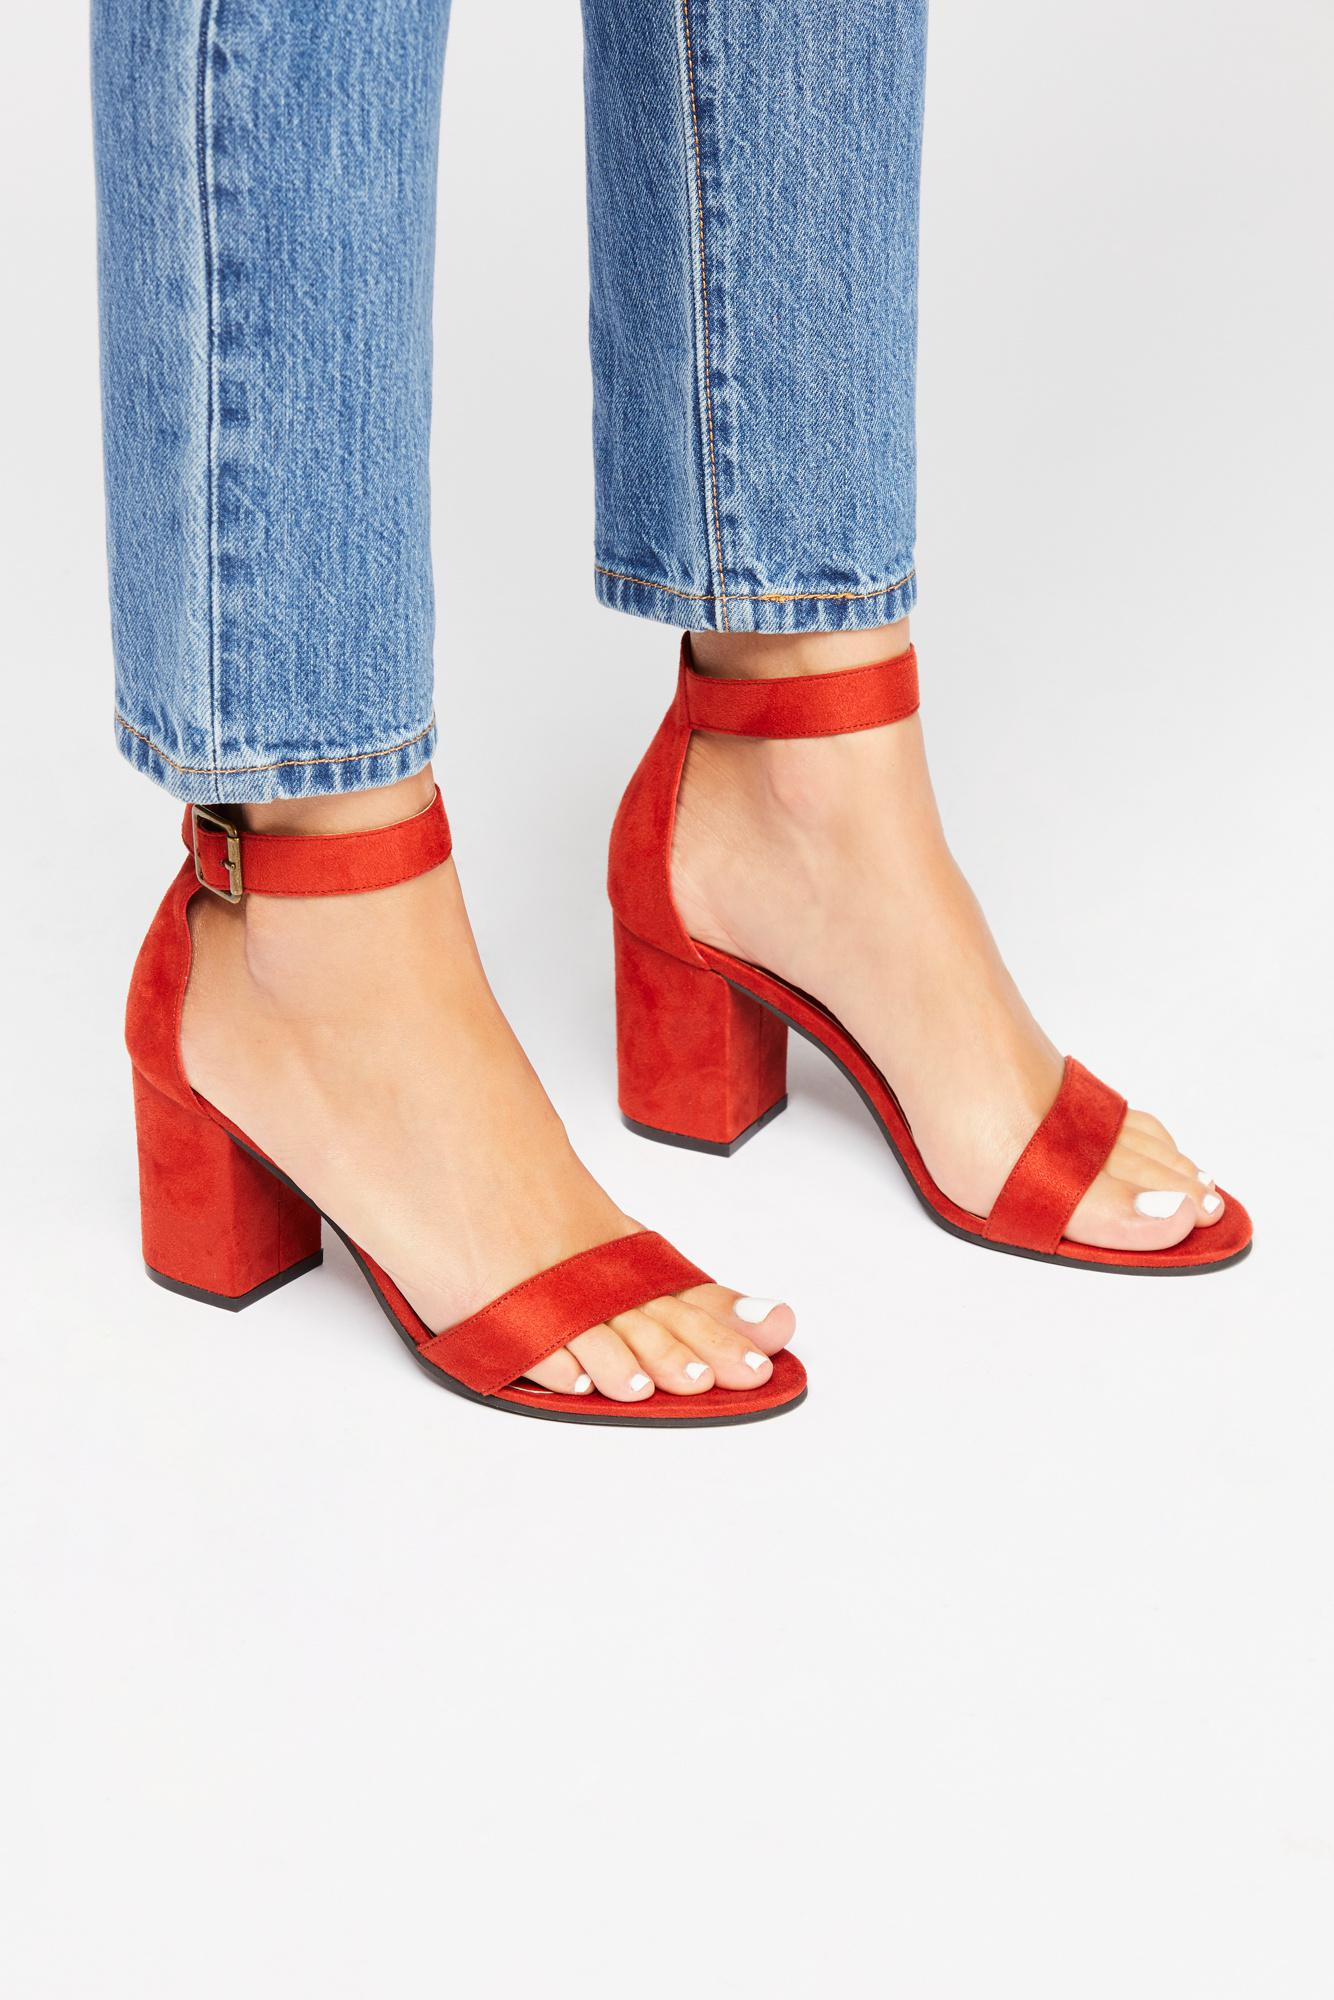 1c080e8f5828 Lyst - Free People Vegan Block Party Heel By Matisse in Red